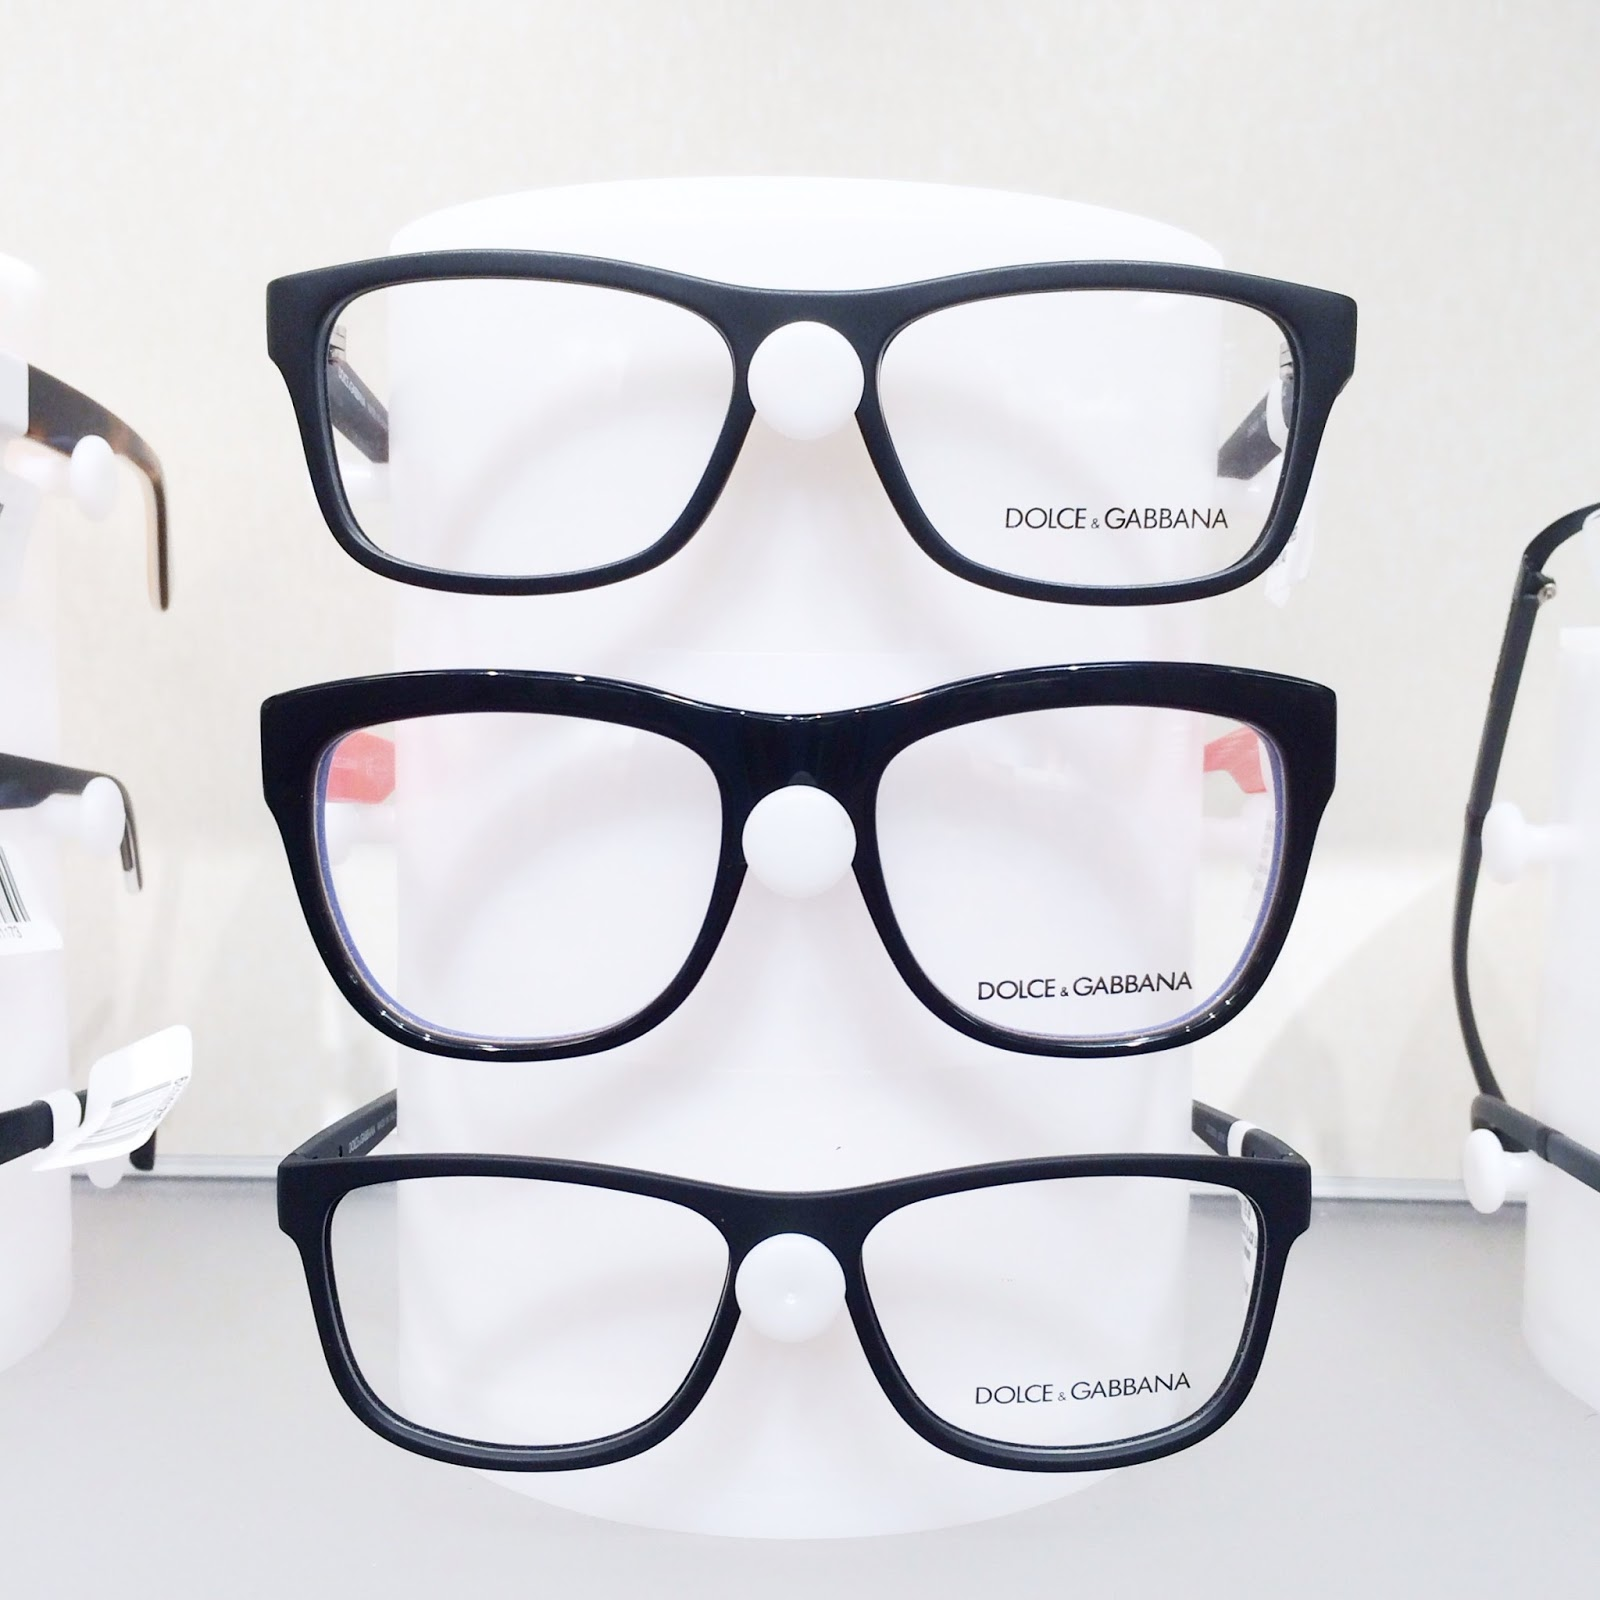 Avery Street Design Blog: shopping for glasses with warby parker